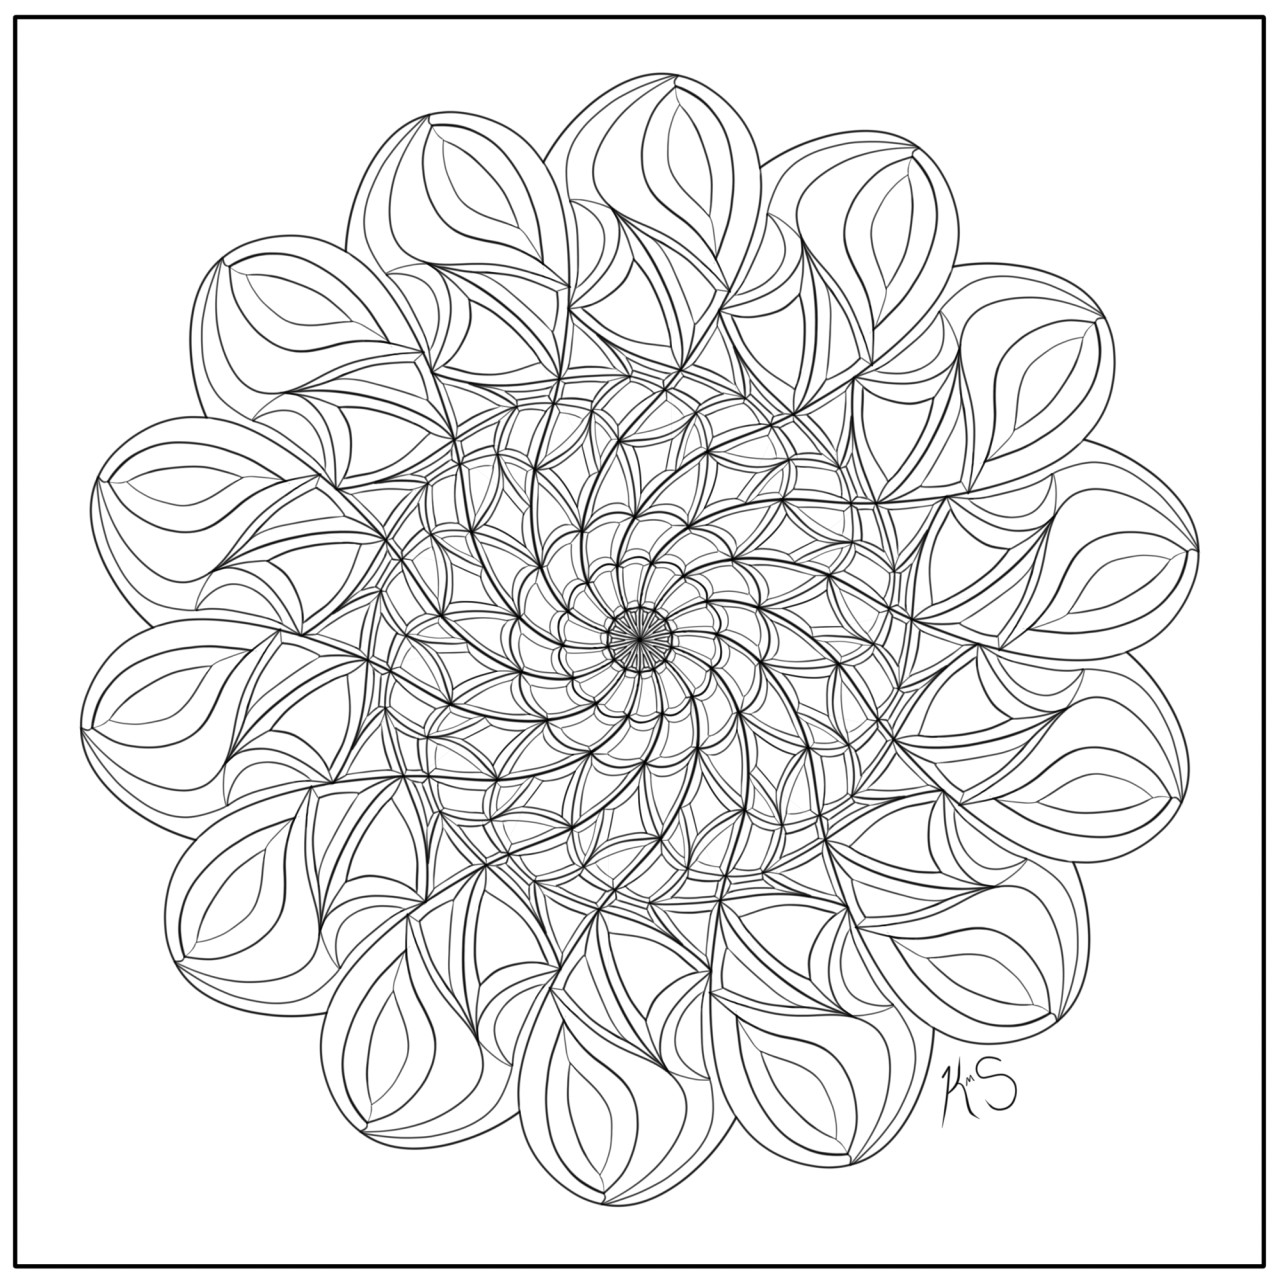 Relaxing Coloring Pages For Kids  Relaxation Coloring Pages Coloring Home